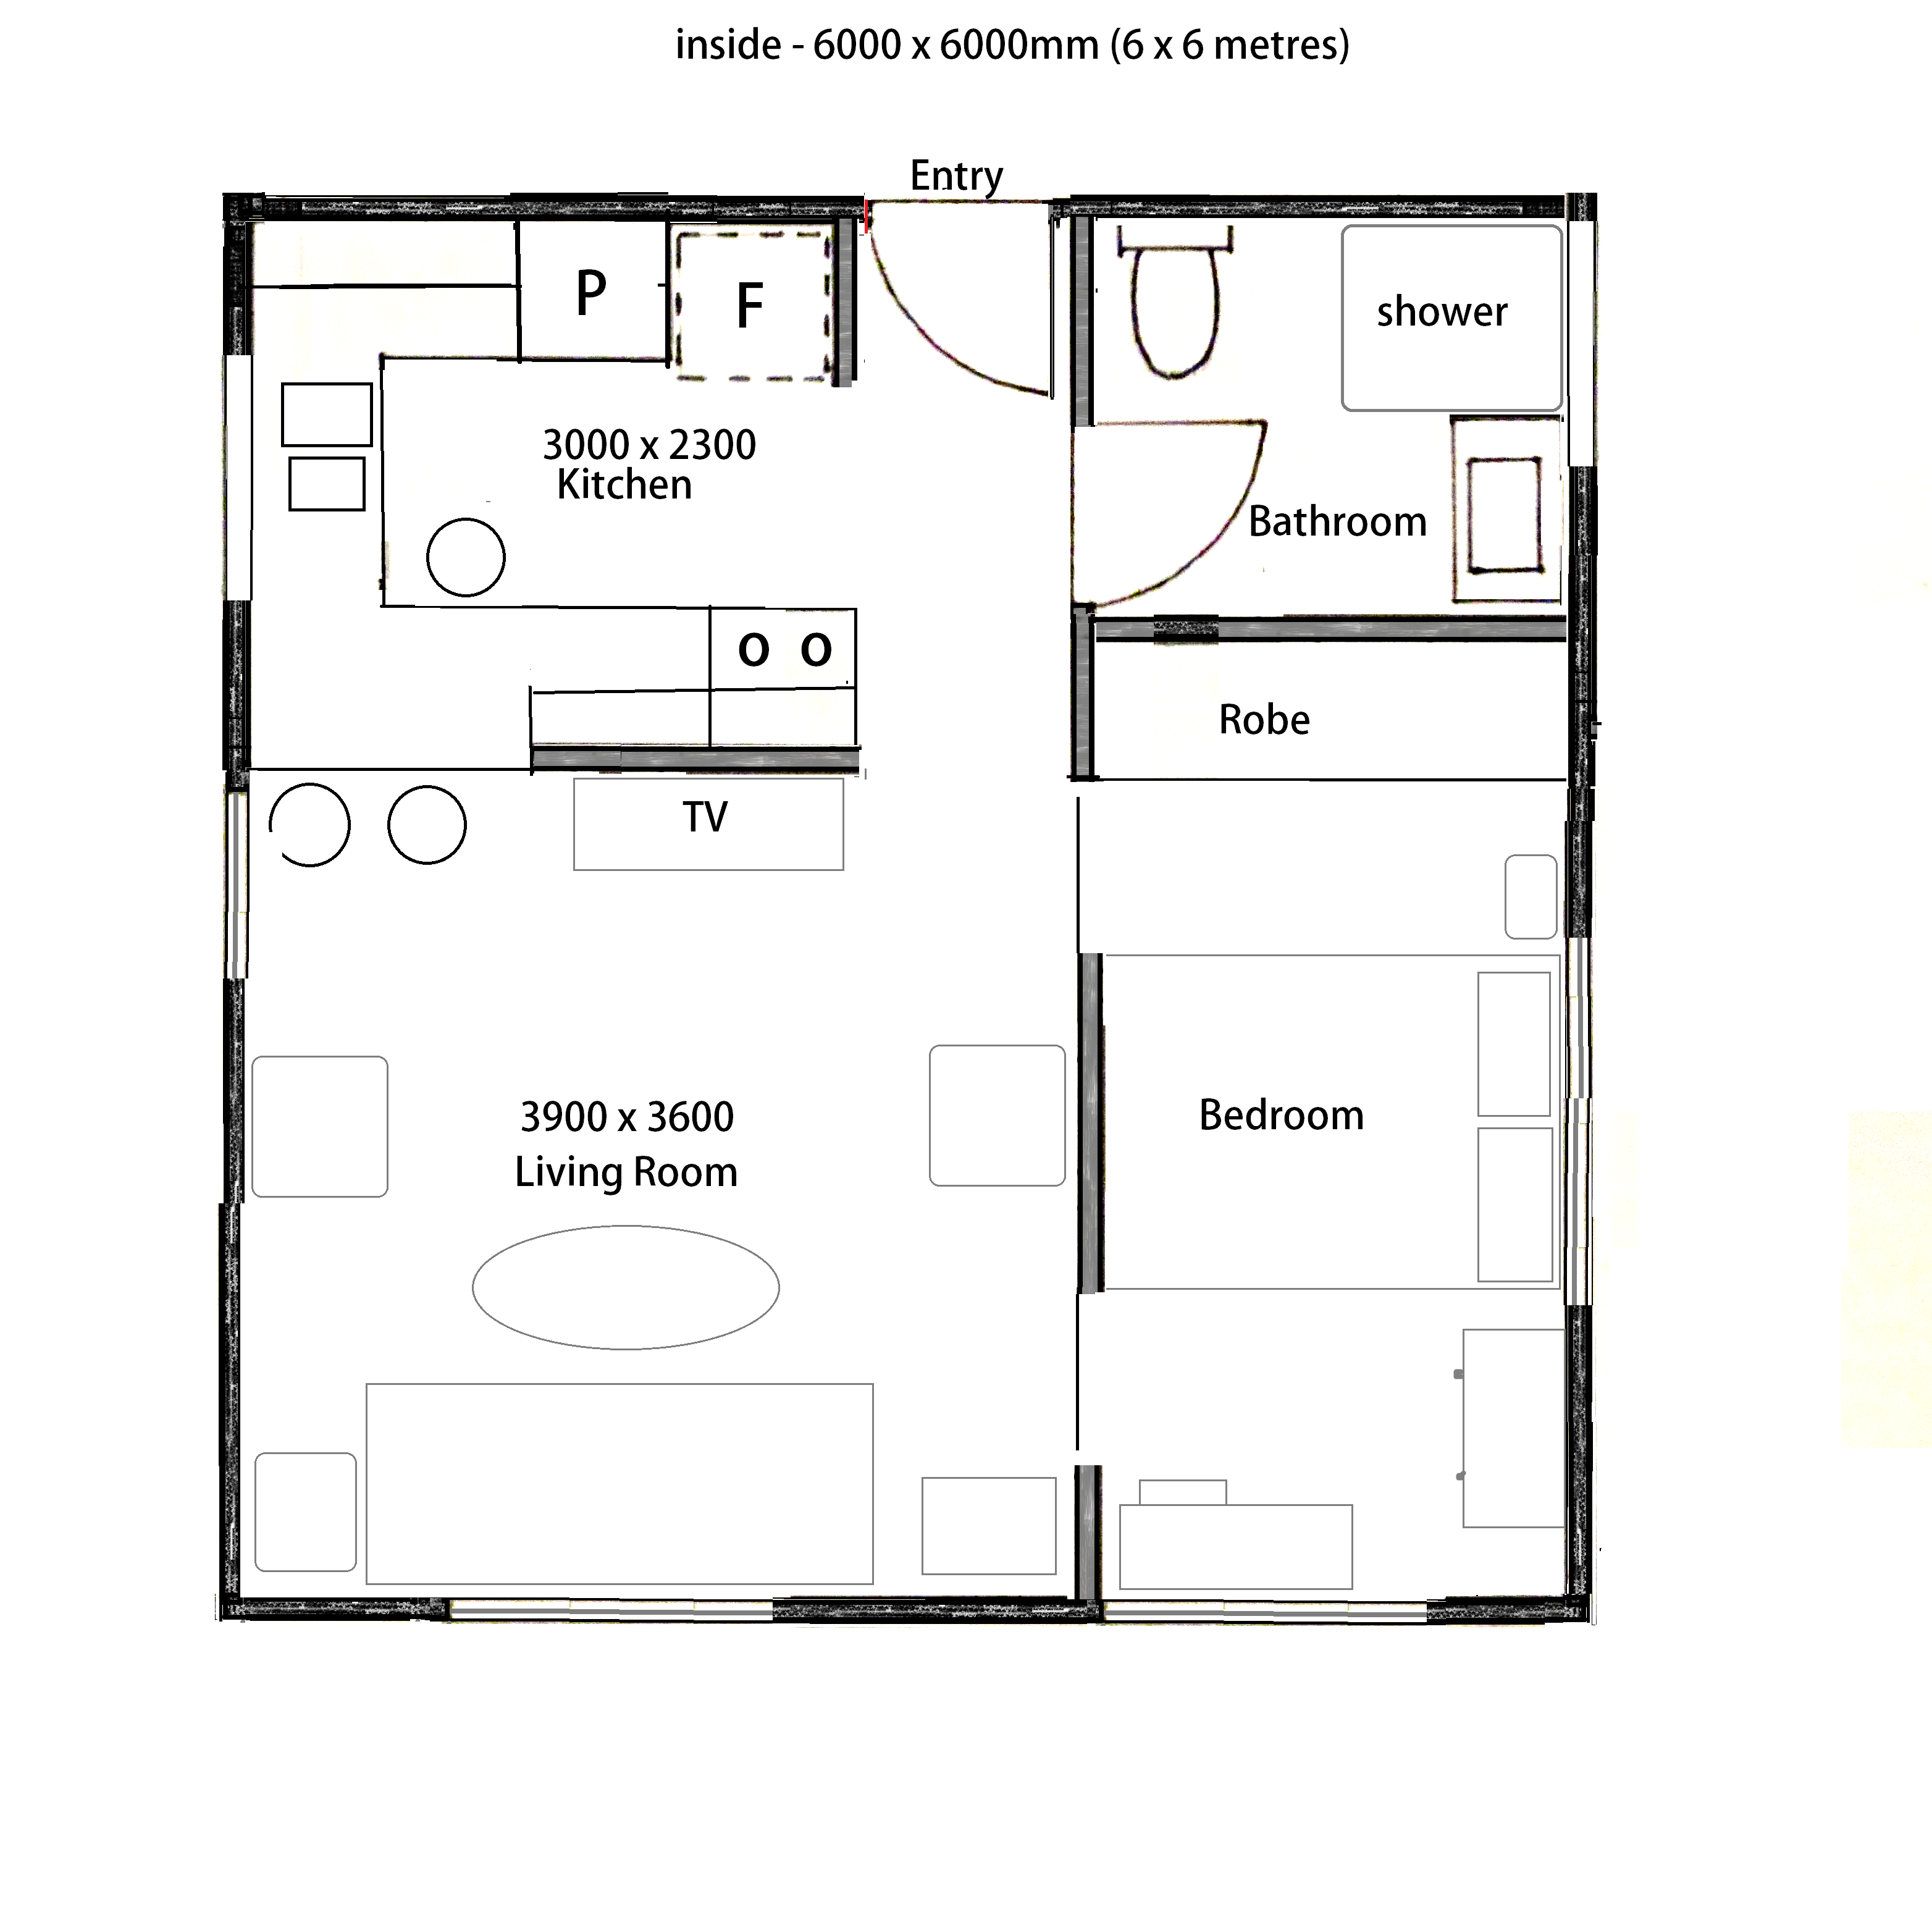 Tiny House Plan 6 X 6 Metres For Out The Front Cottage Floor Plans Bedroom House Plans House Plans